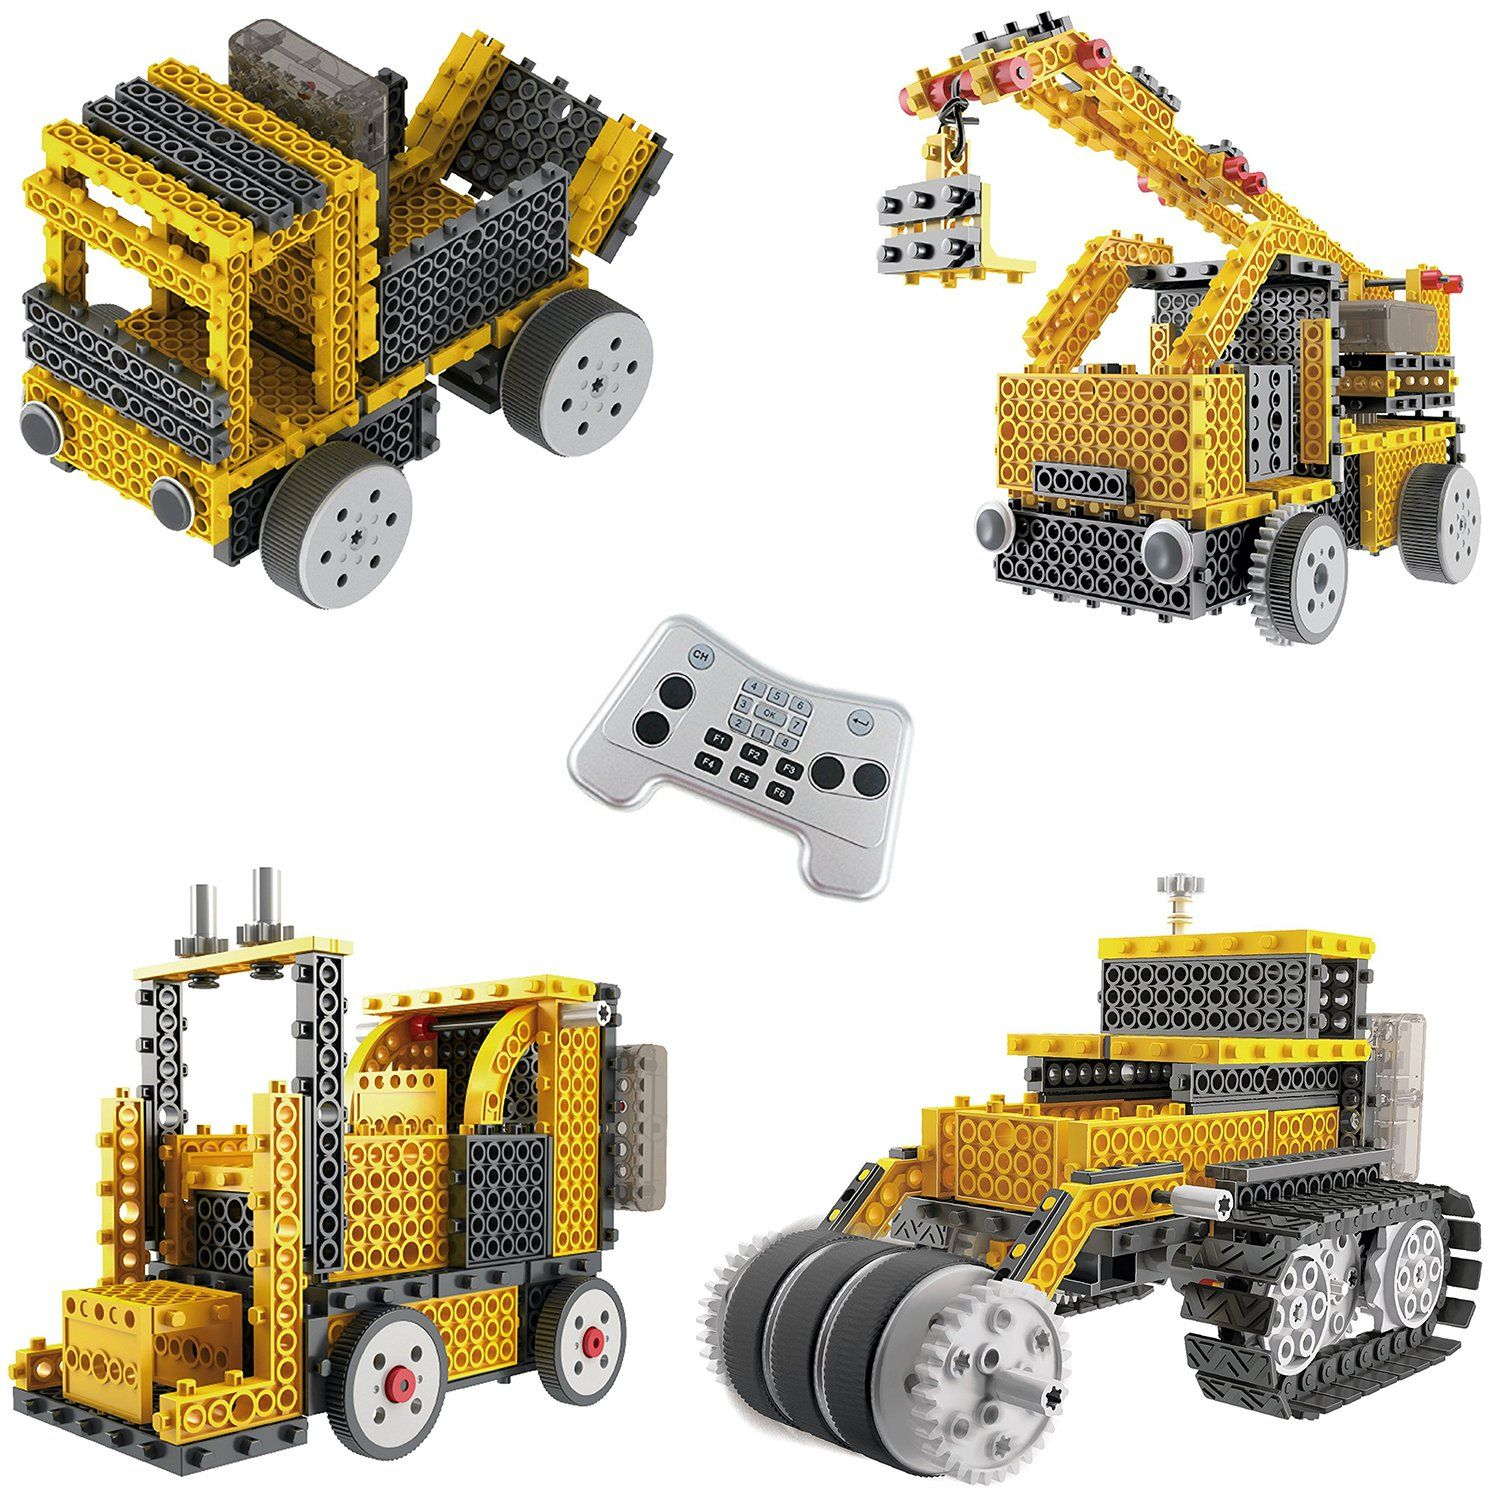 Ingenious Machines Construction Crew Robot Vehicle Building Kit